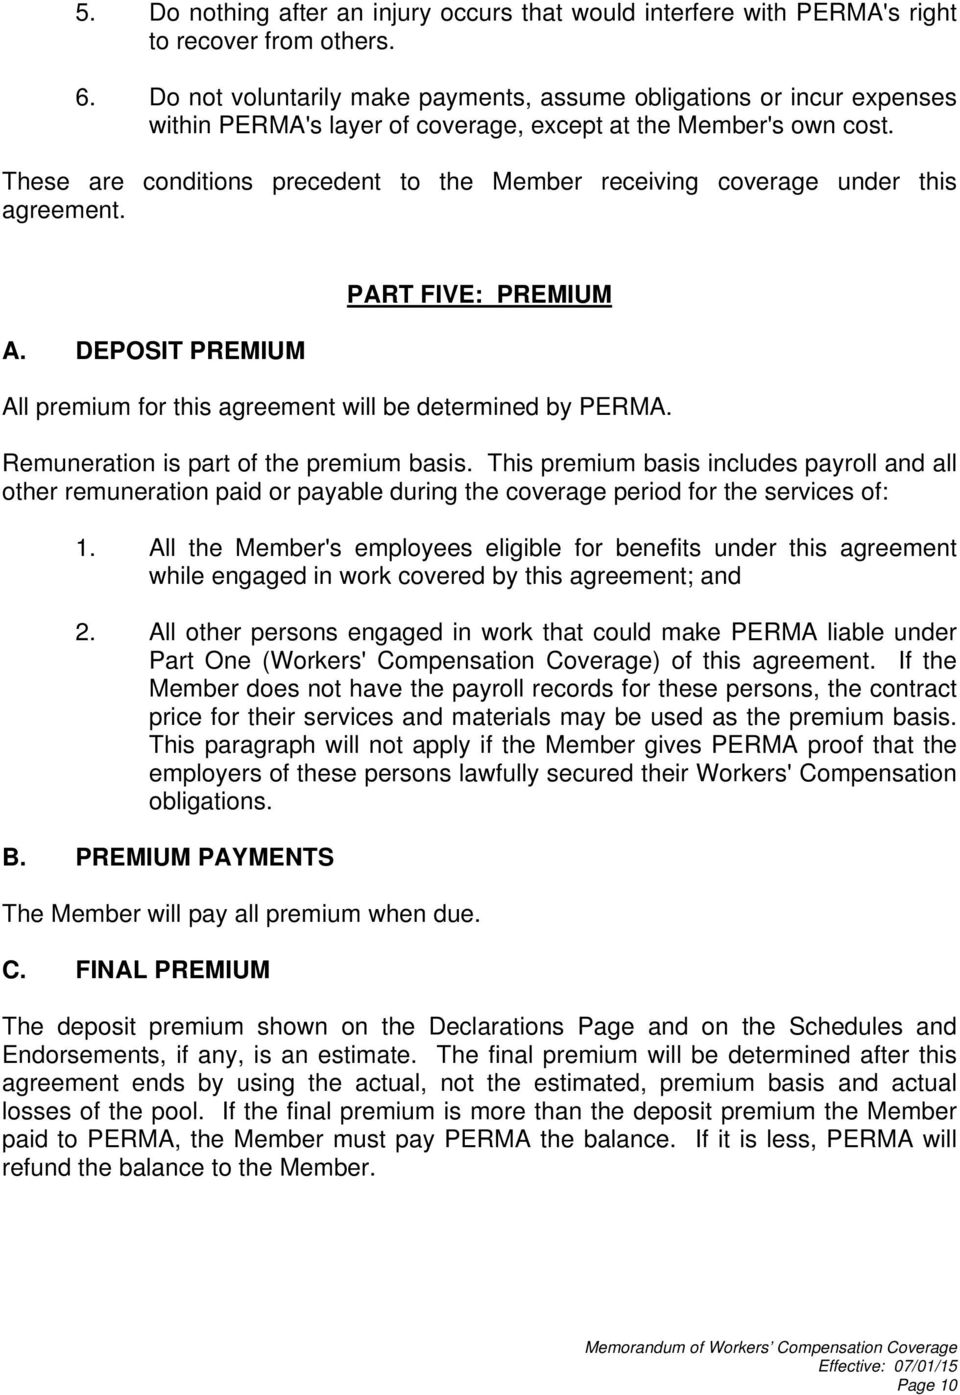 These are conditions precedent to the Member receiving coverage under this agreement. A. DEPOSIT PREMIUM PART FIVE: PREMIUM All premium for this agreement will be determined by PERMA.